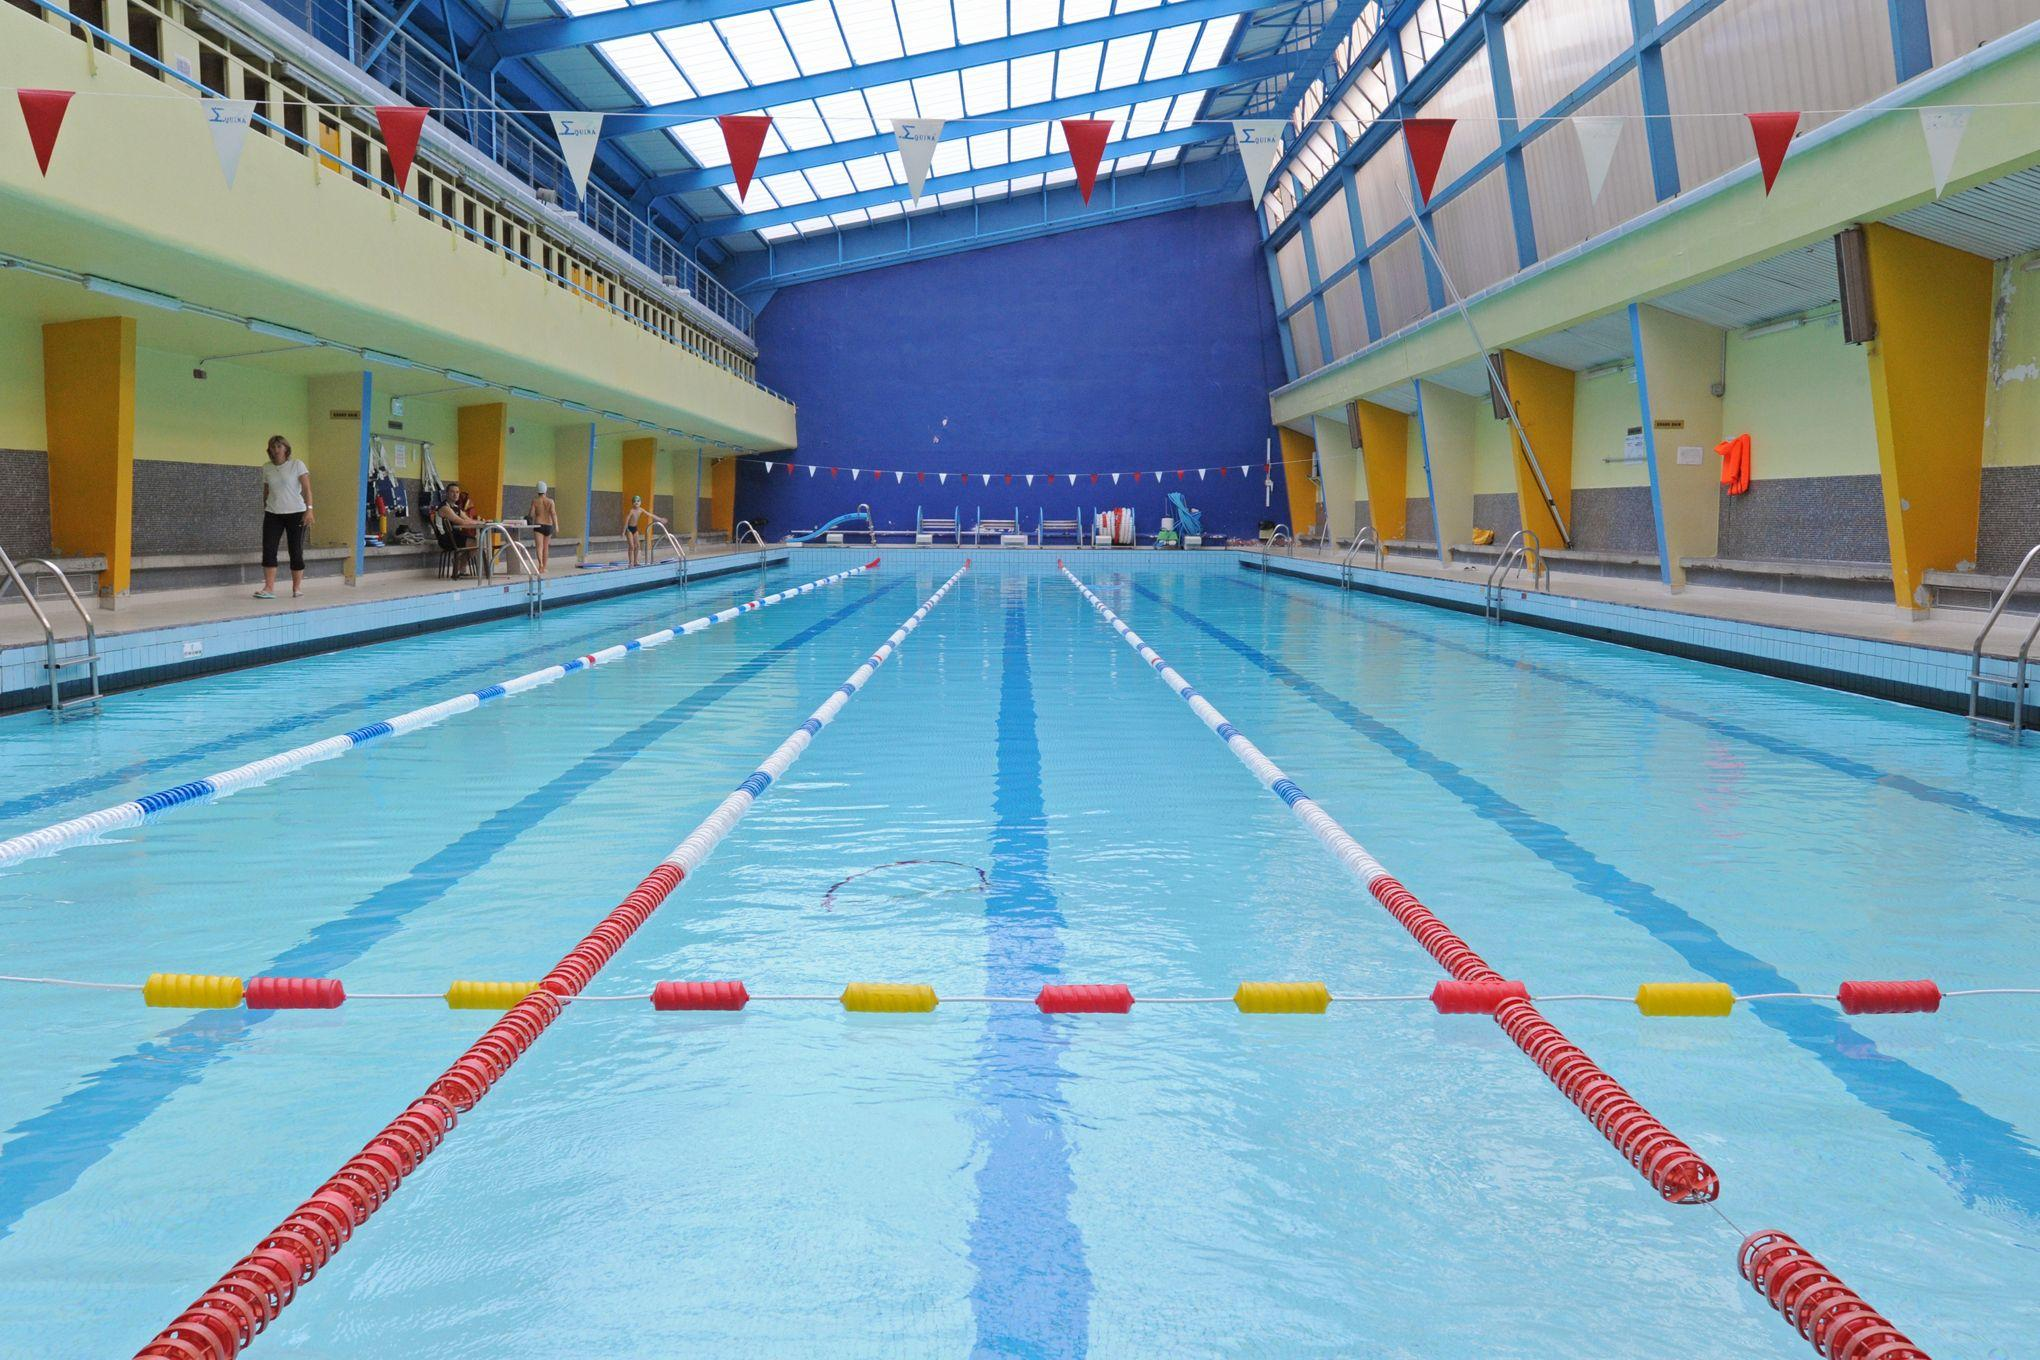 Les meilleures piscines de paris for Aquagym piscine paris